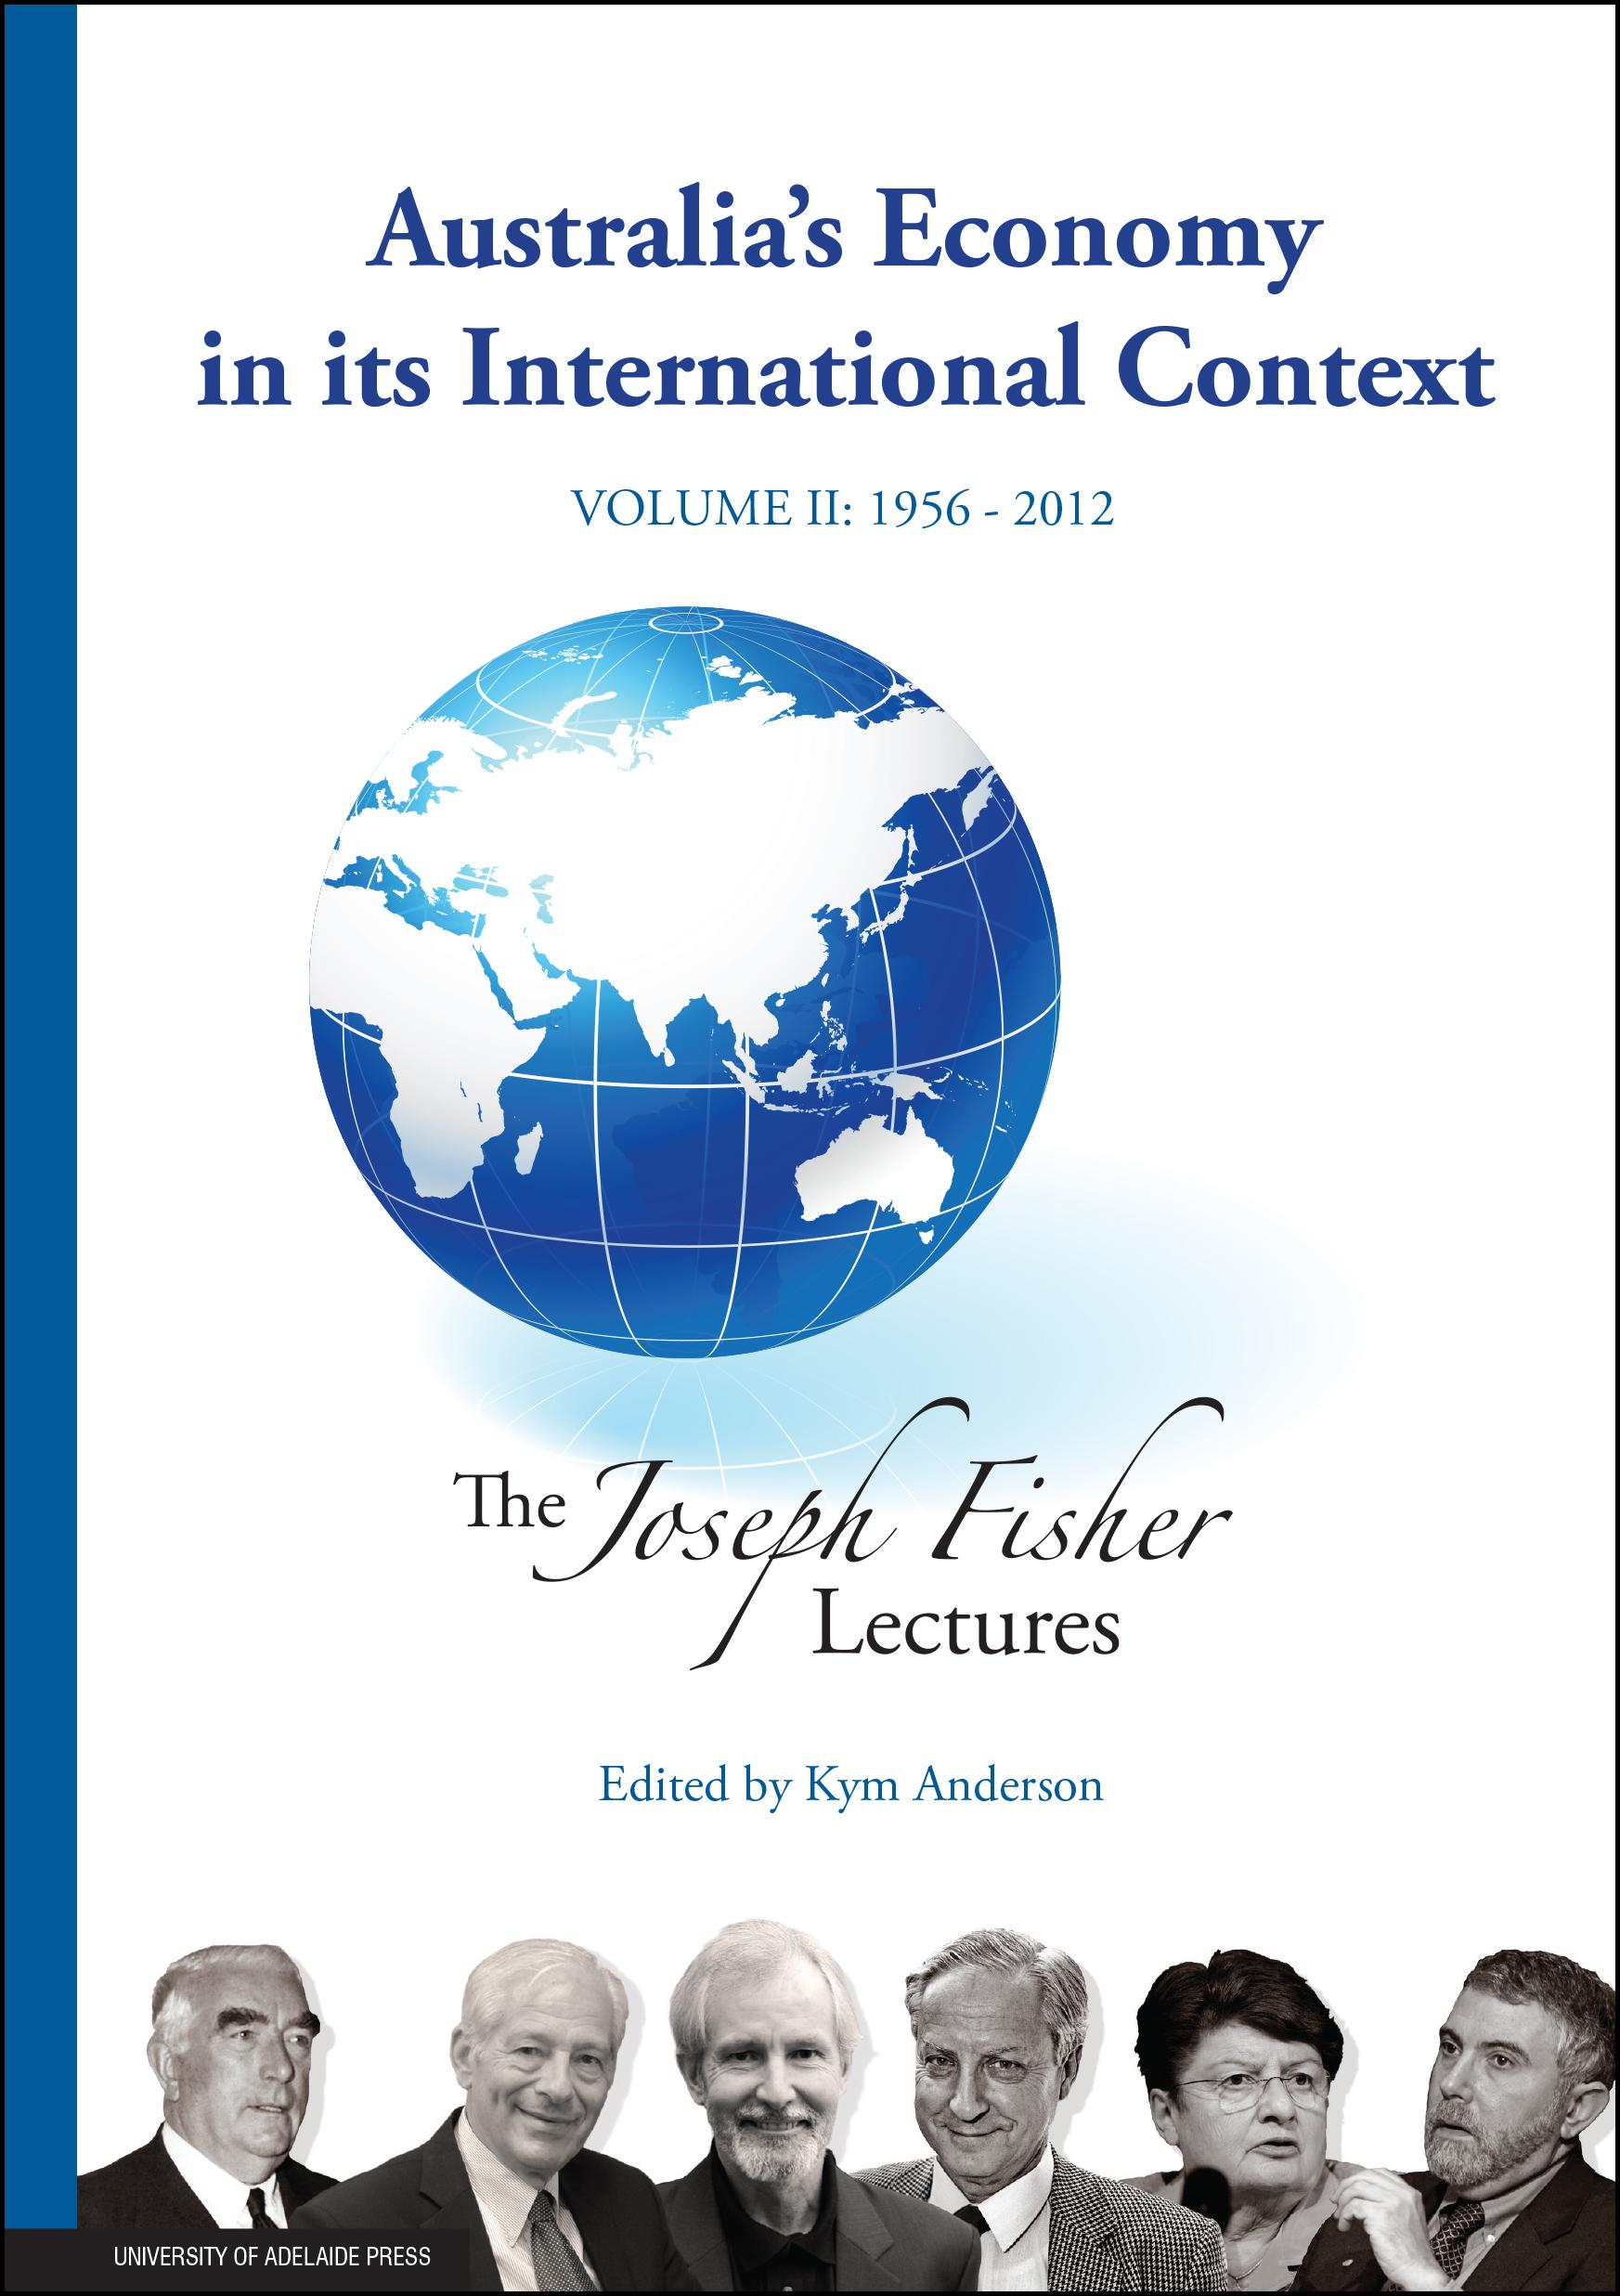 Fisher lectures cover